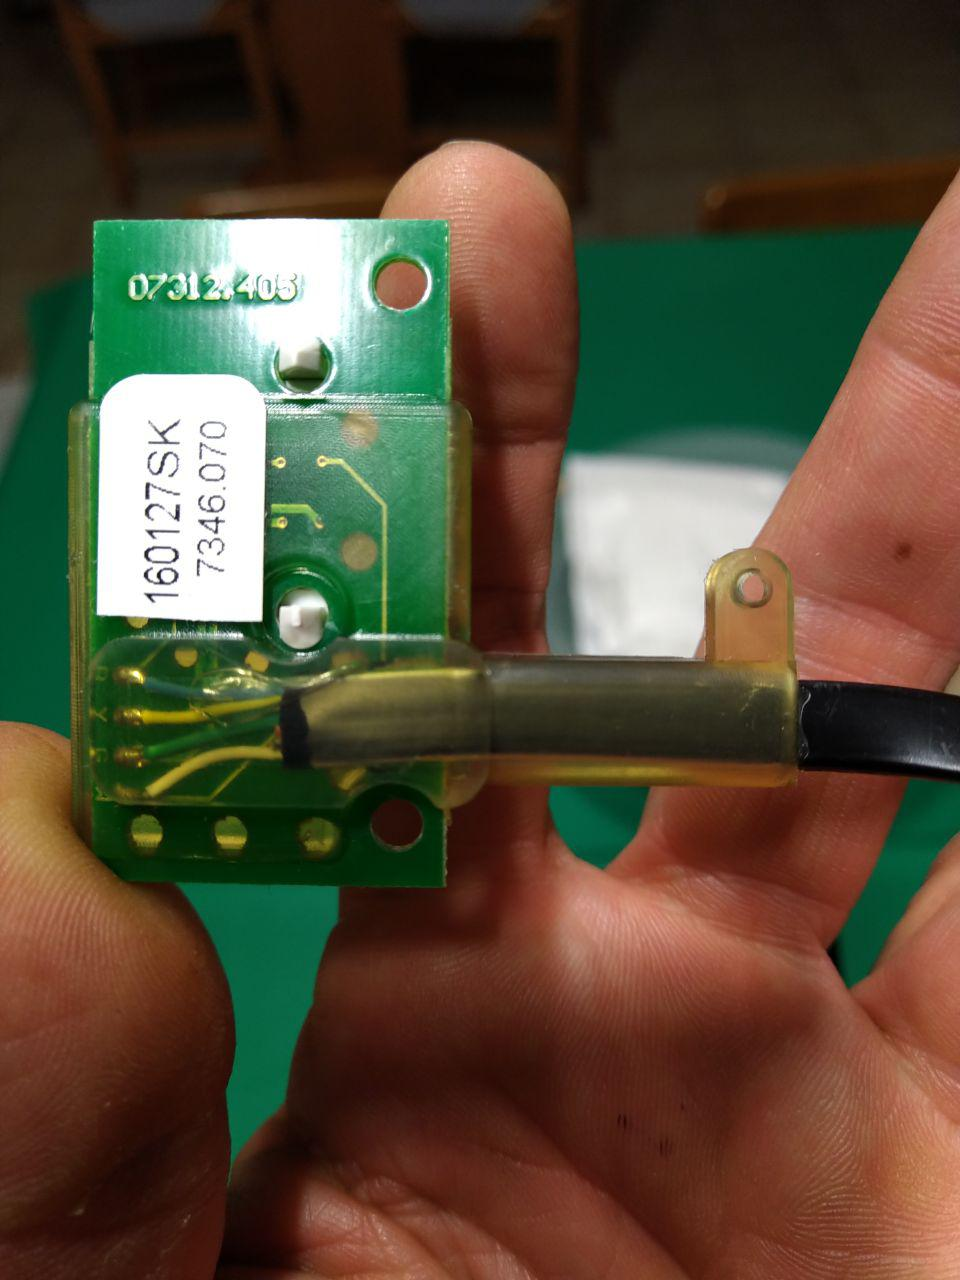 Davis temperature and humidity sensor back side